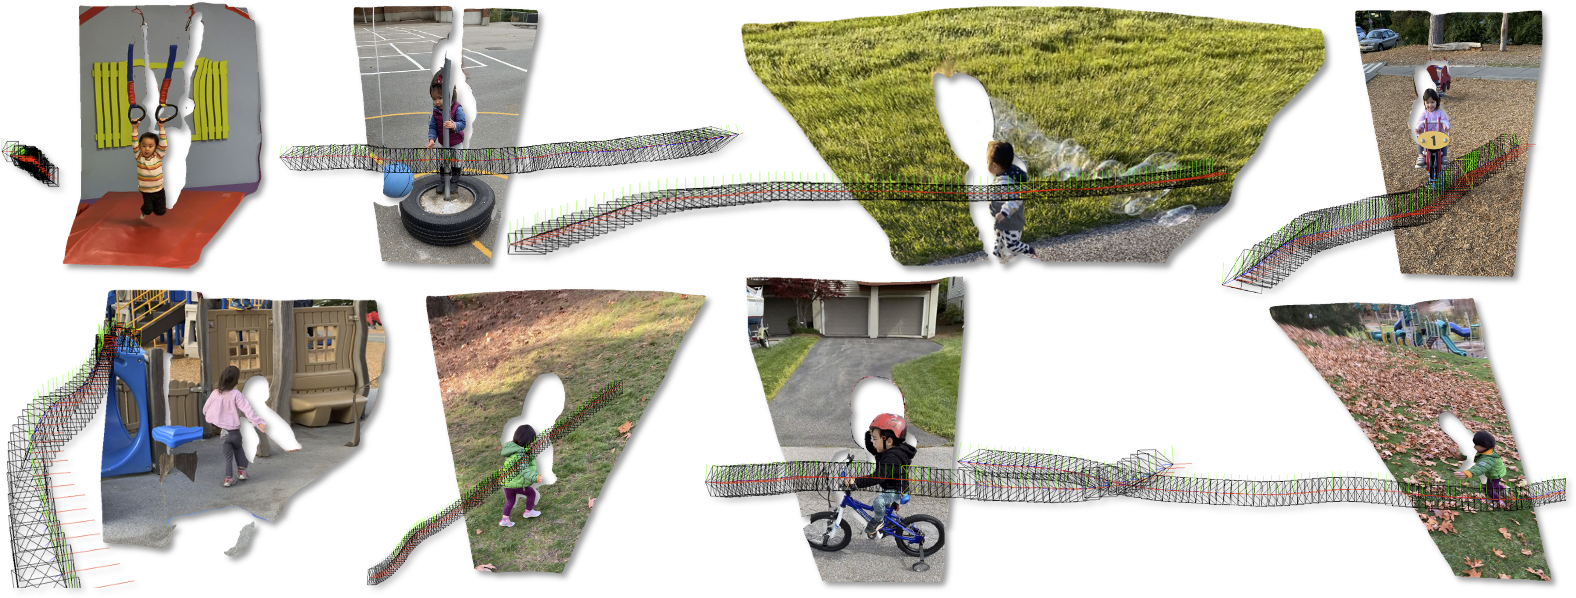 We present an algorithm for estimating consistent dense depth maps and camera poses from a monocular video. We           integrate a learni